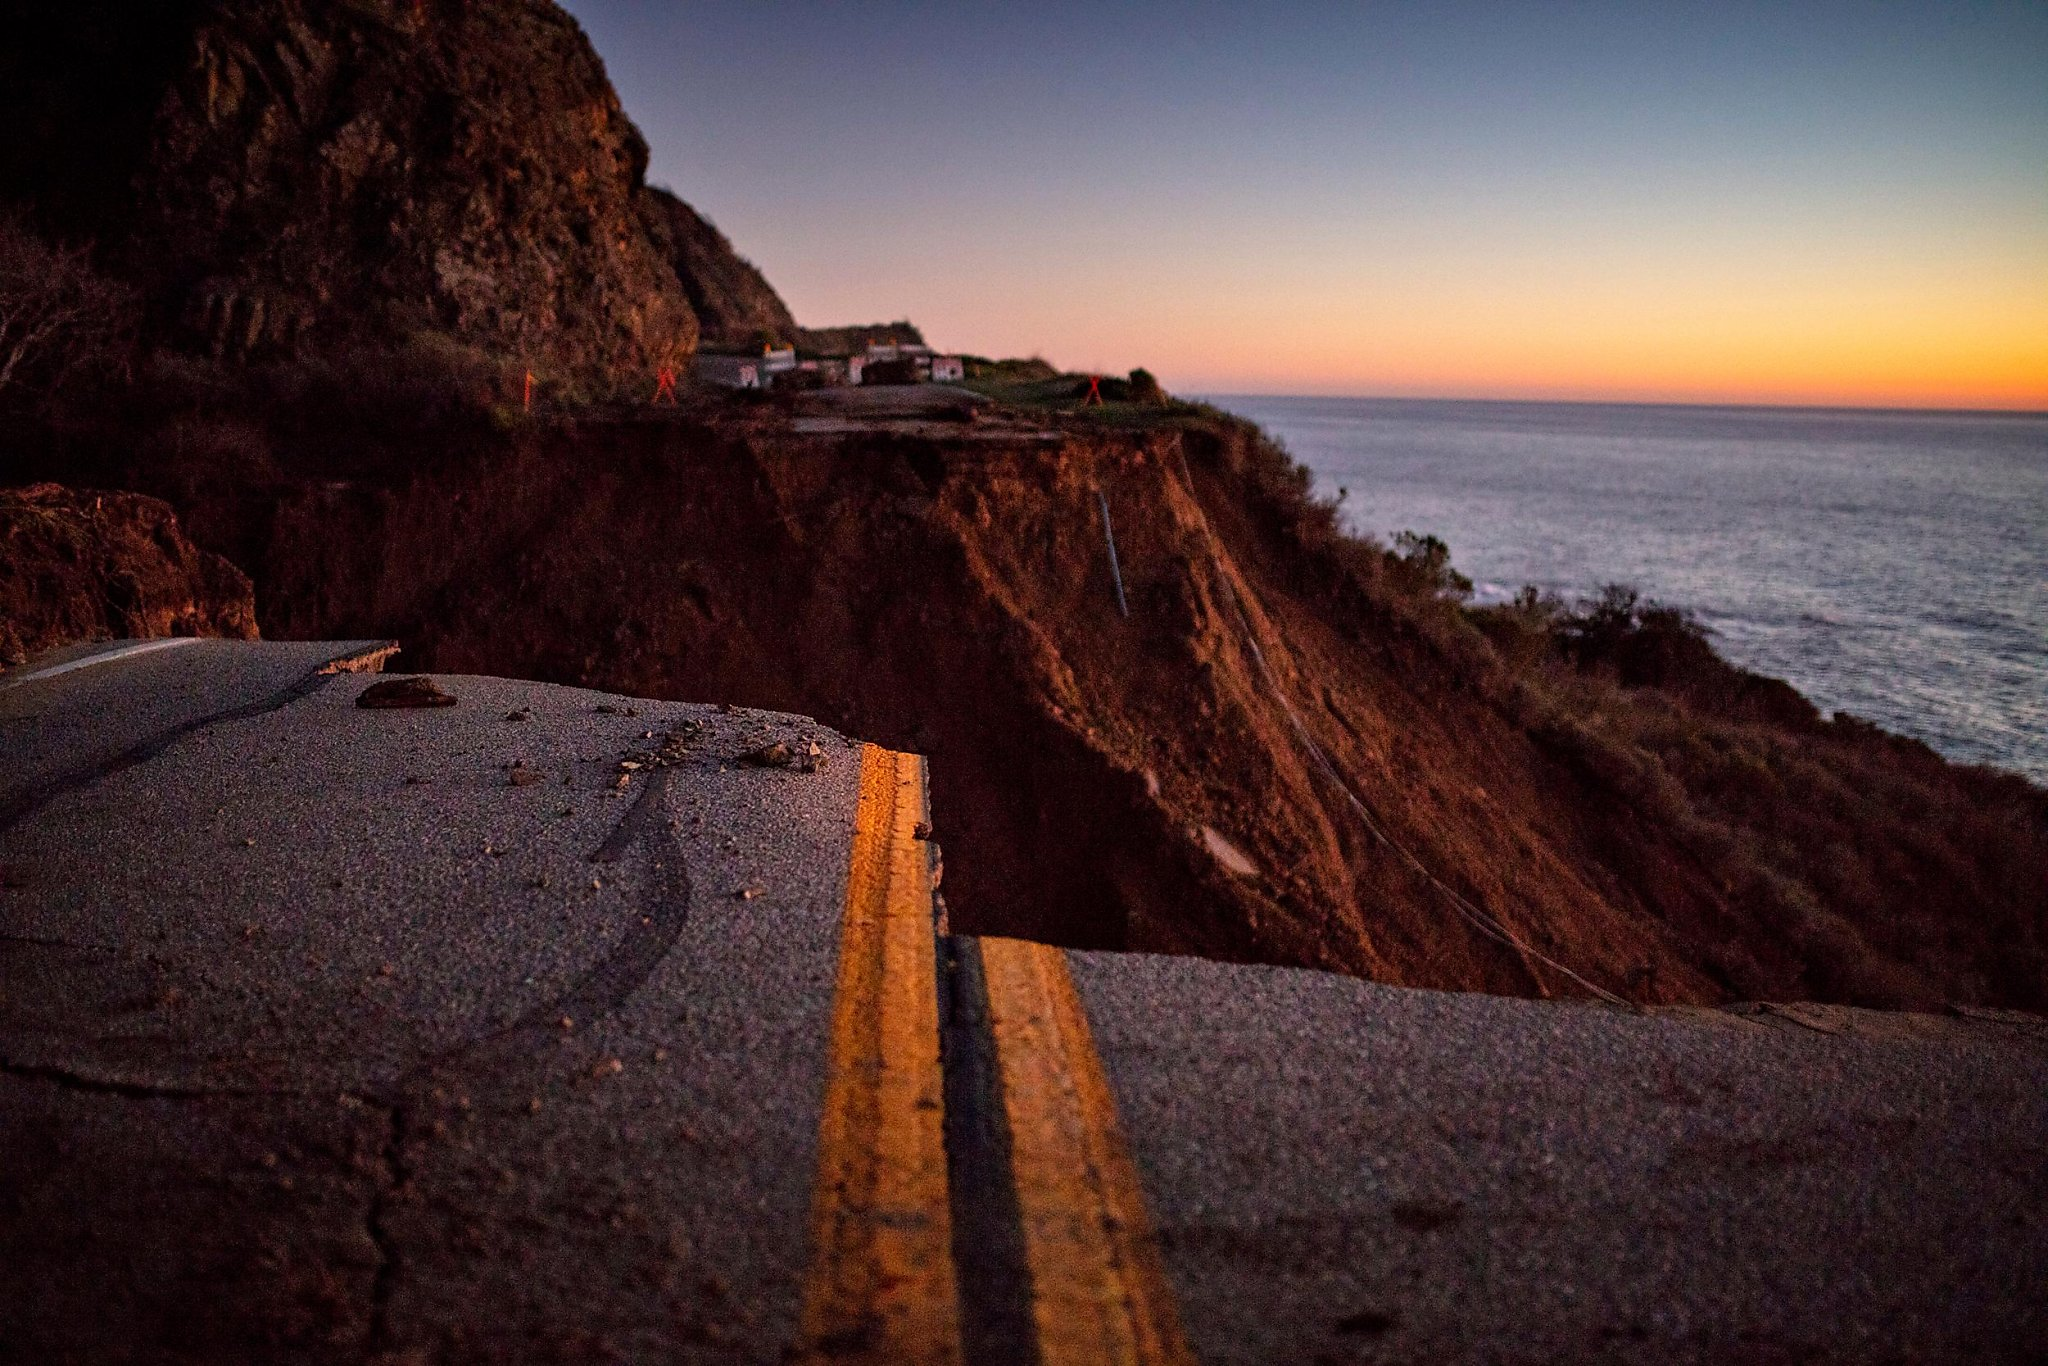 The stretch of Highway 1 that washed into the ocean will now reopen weeks ahead of schedule